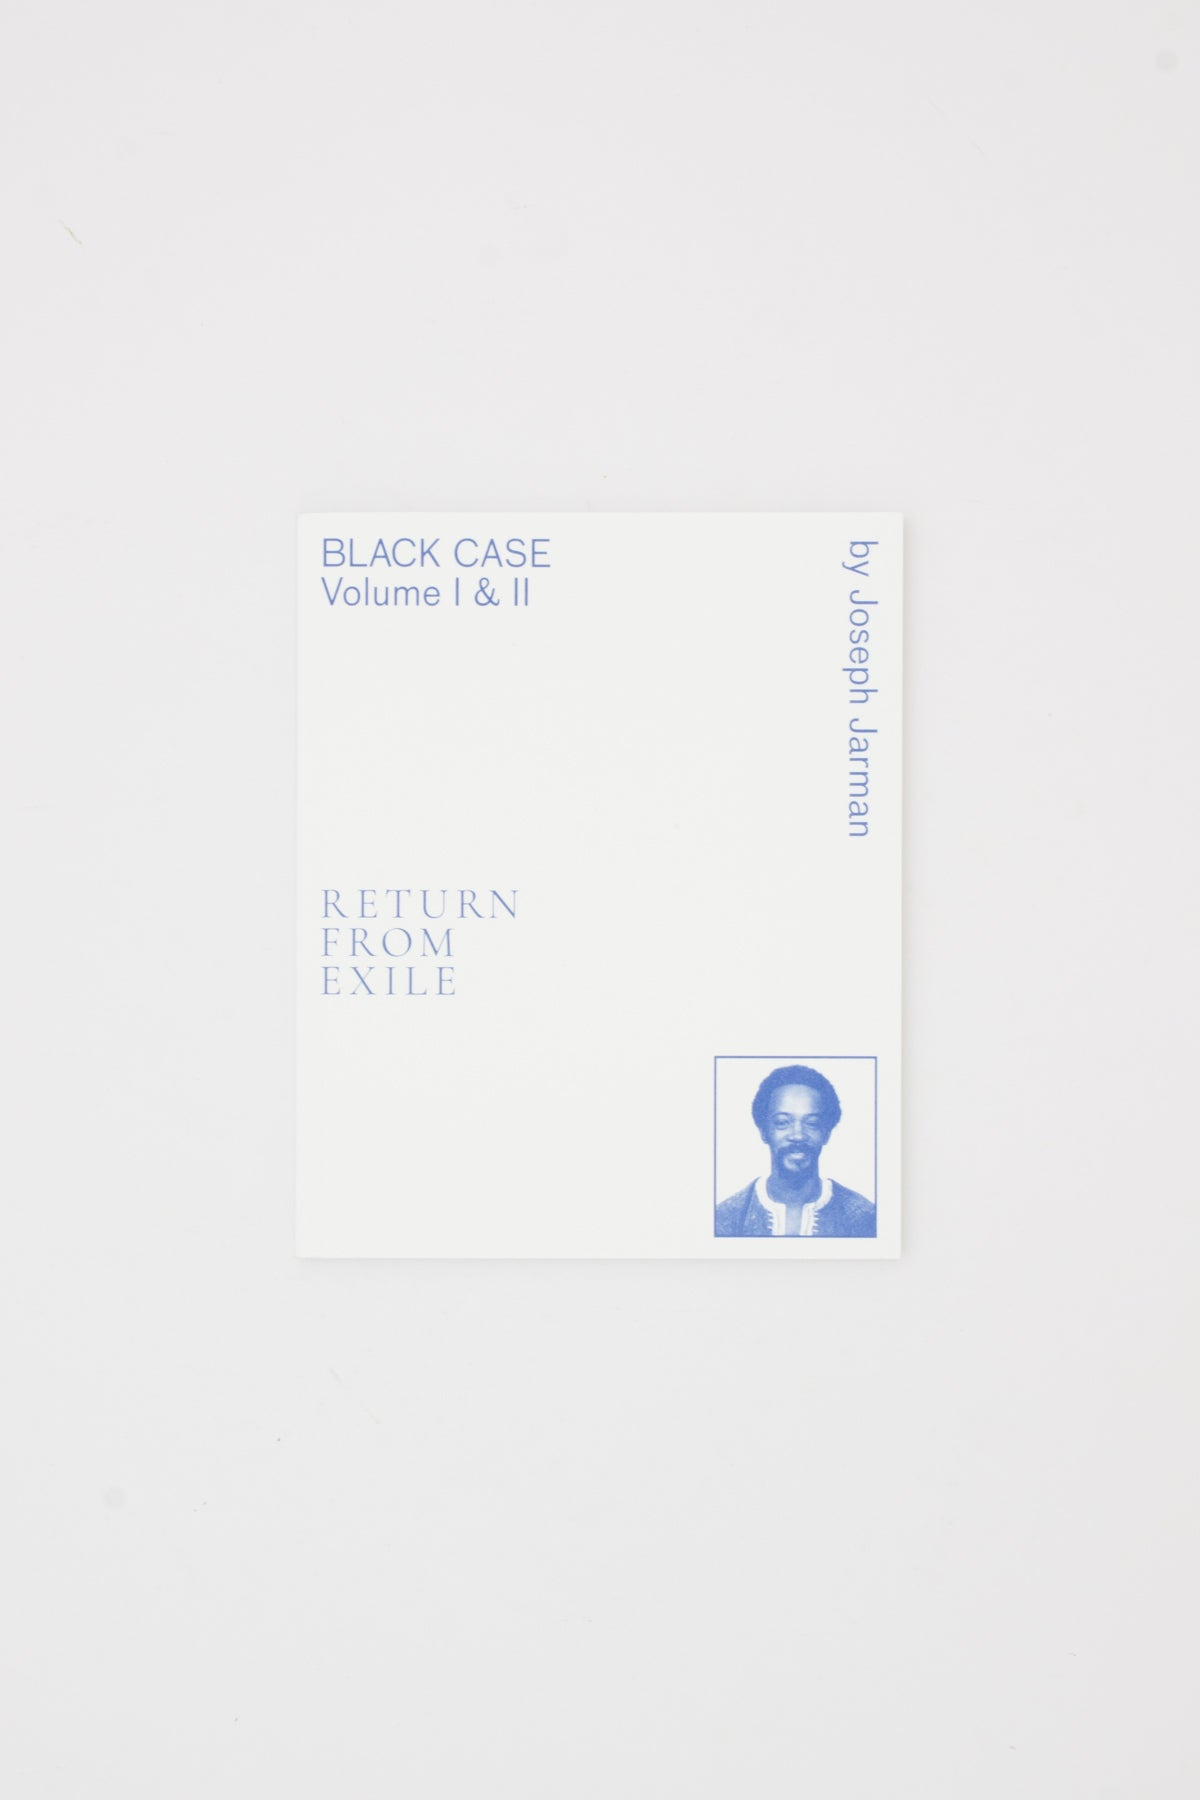 Black Case Volume I and II: Return From Exile - Joseph Jarman